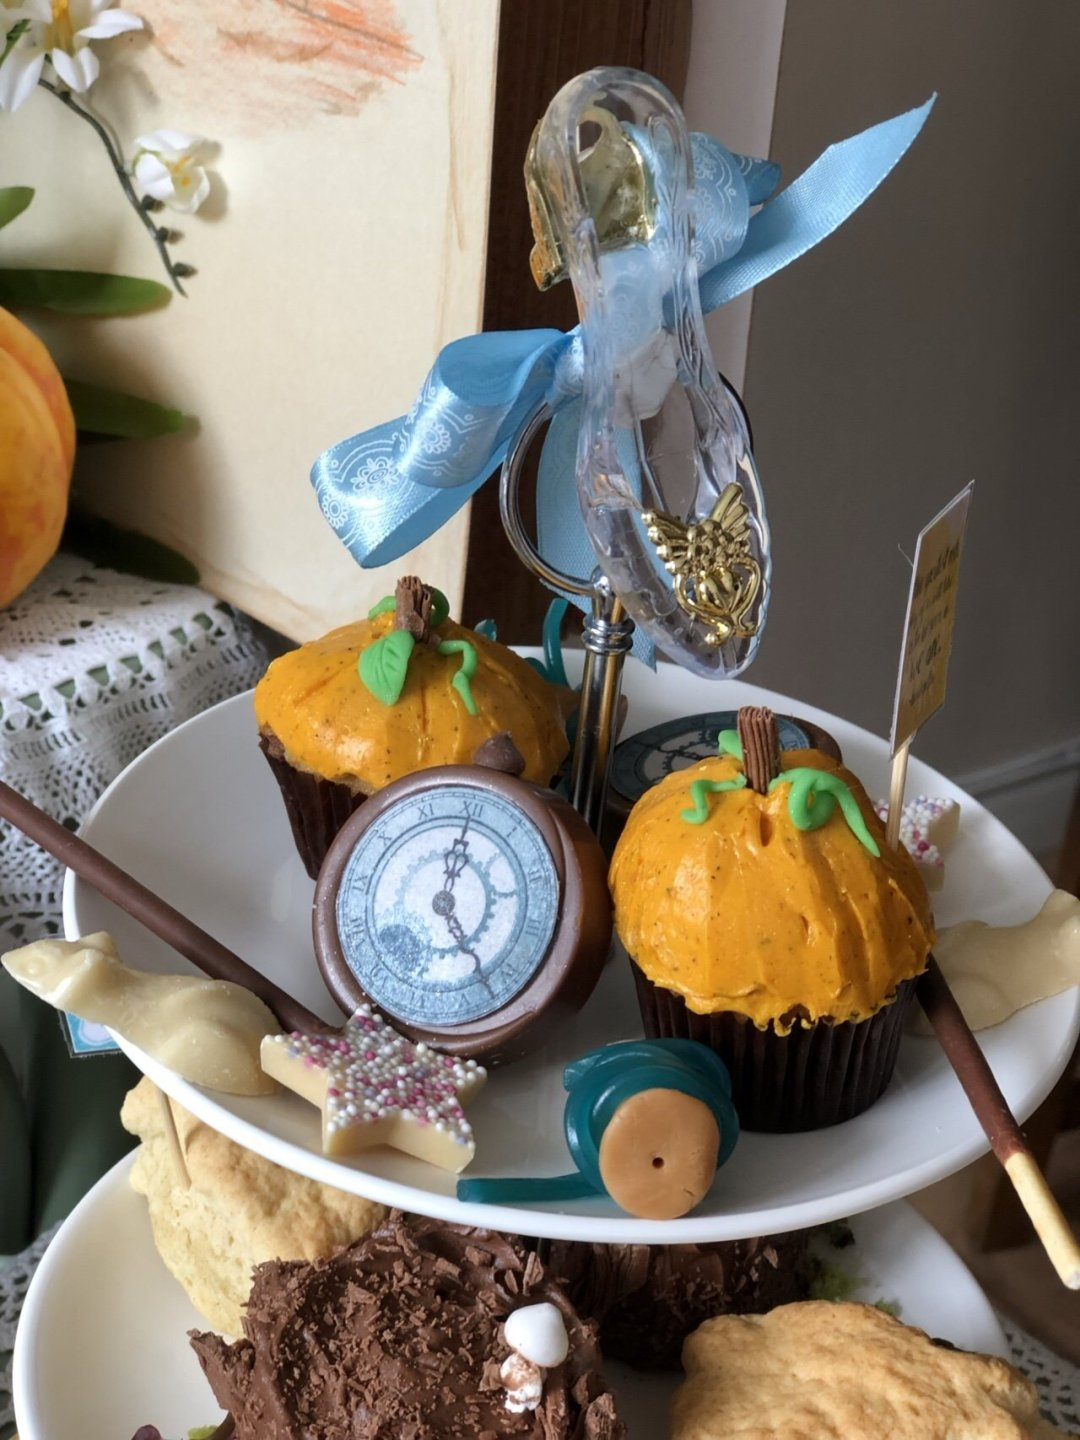 Sweet stuff from Cinderella afternoon tea, pumpkin muffins